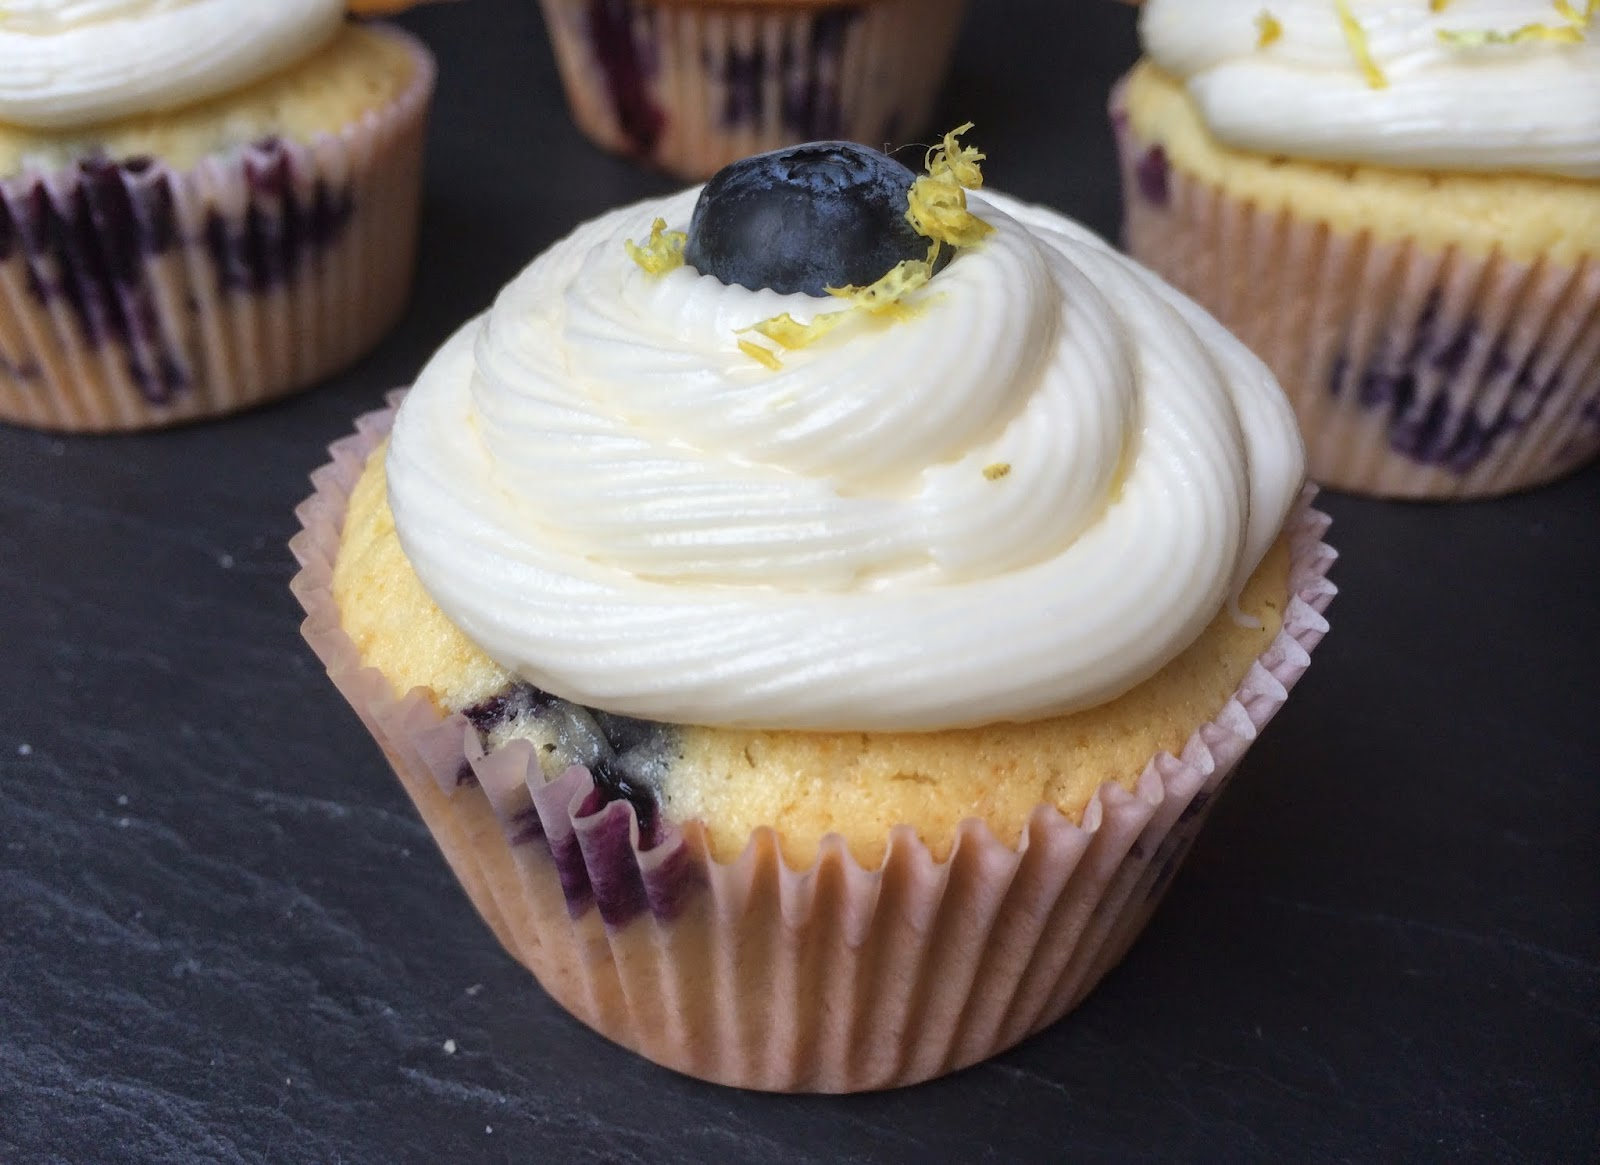 ... Ate on Your Plate: Blueberry Cupcakes with Lemon Cream Cheese Frosting